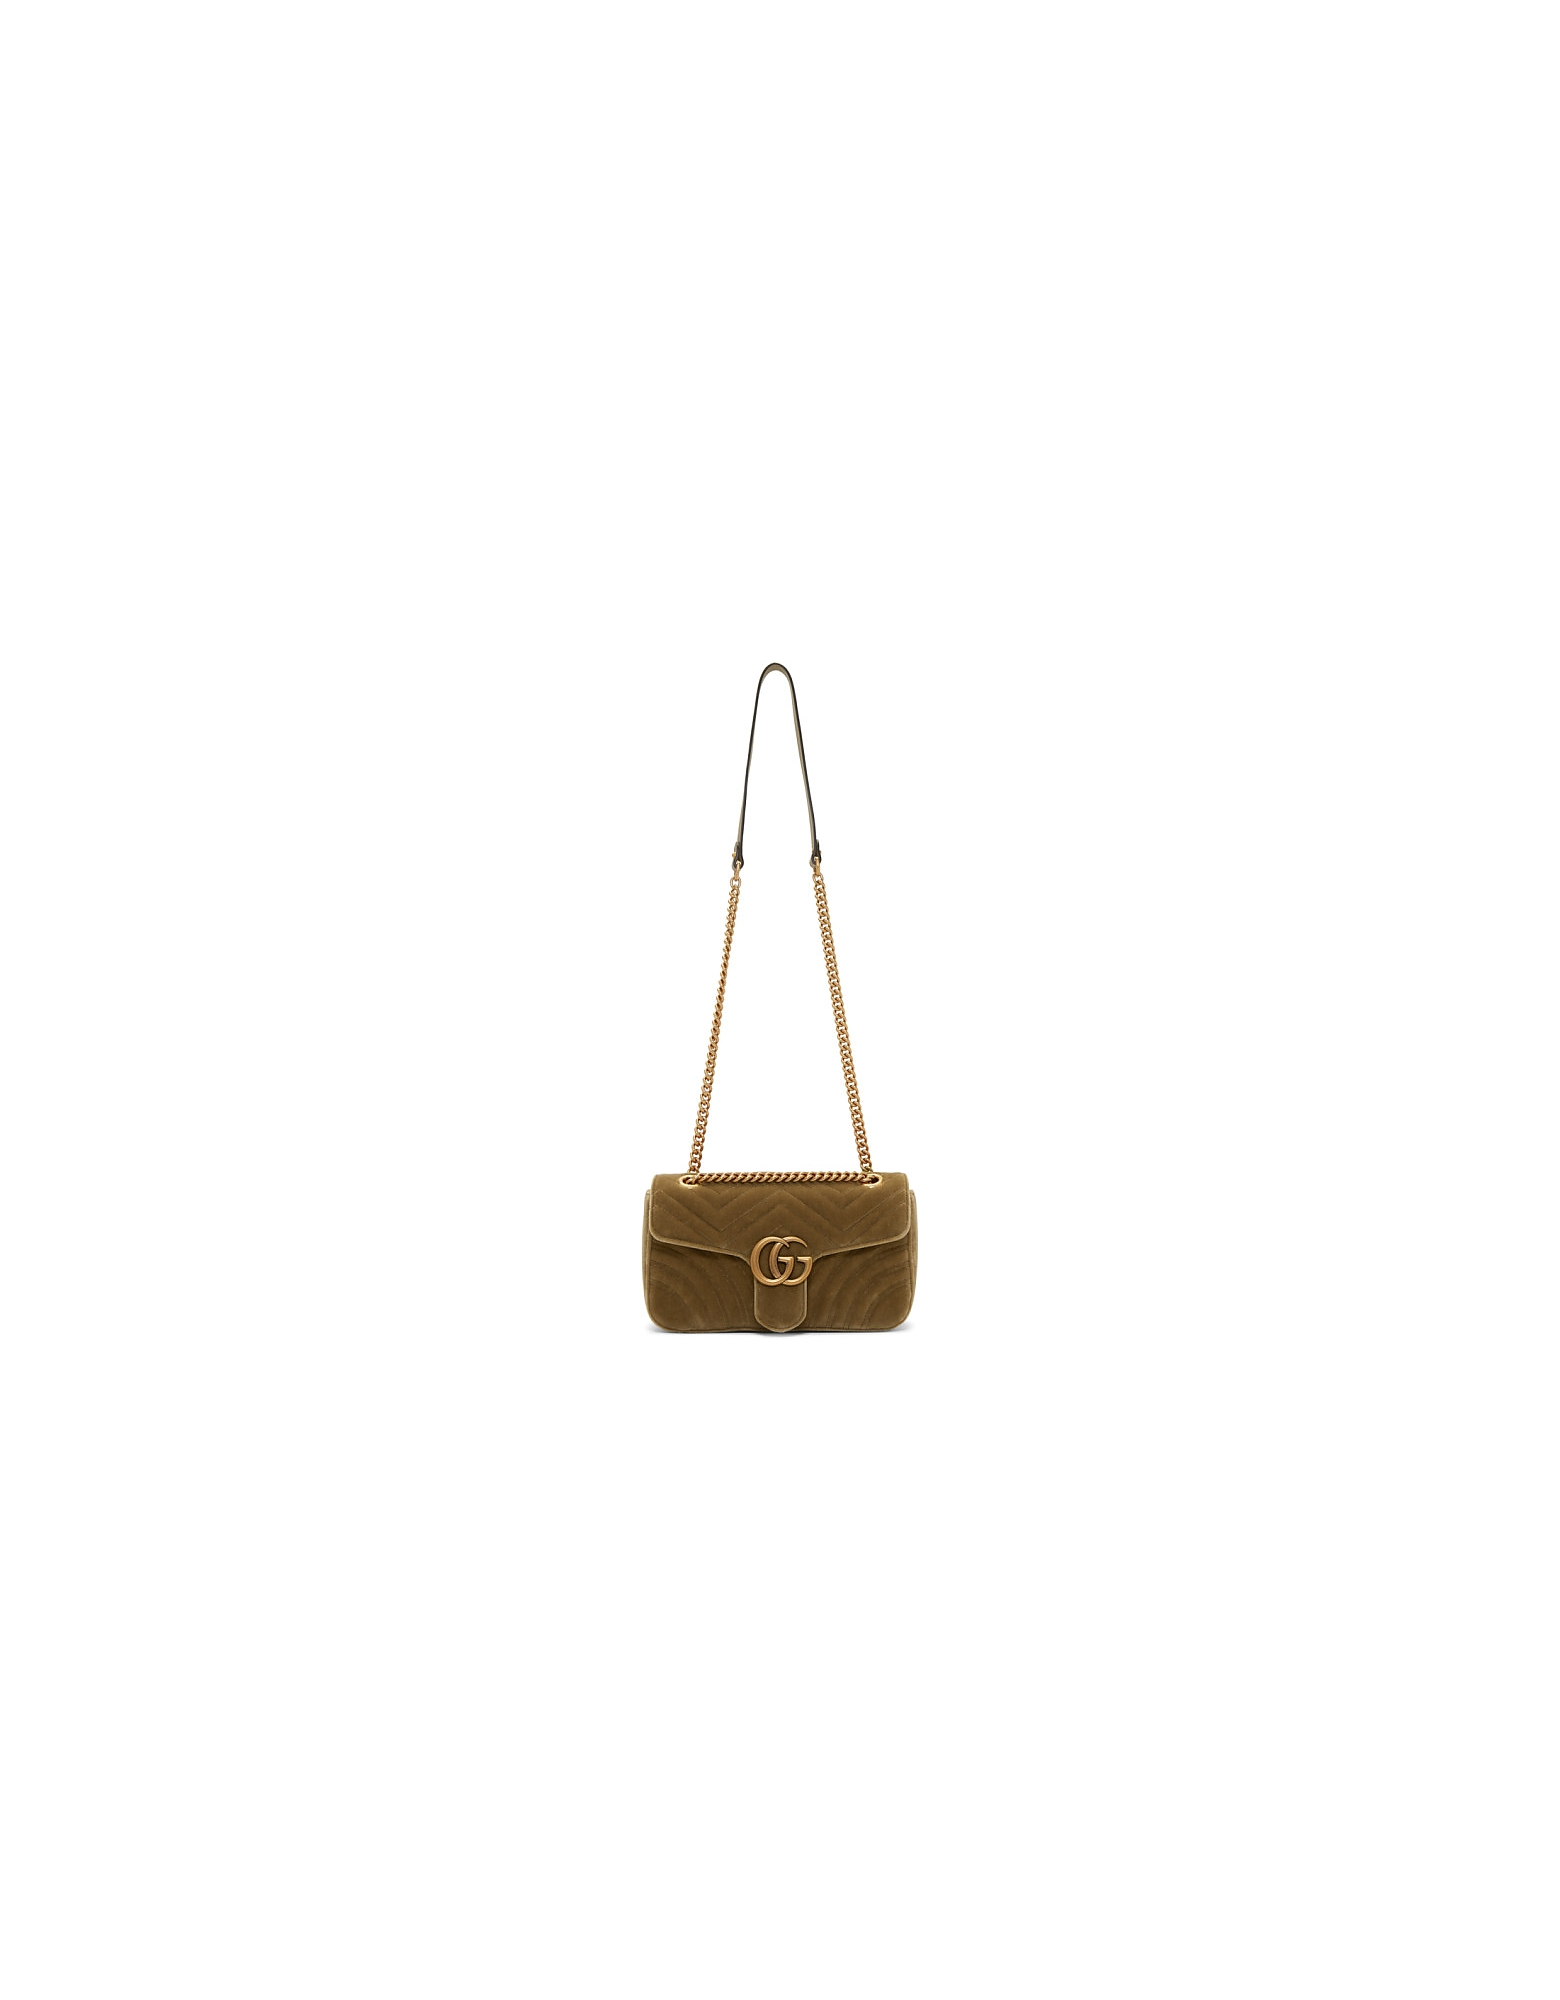 Gucci Designer Handbags, Tan Velvet Small GG Marmont 2.0 Bag